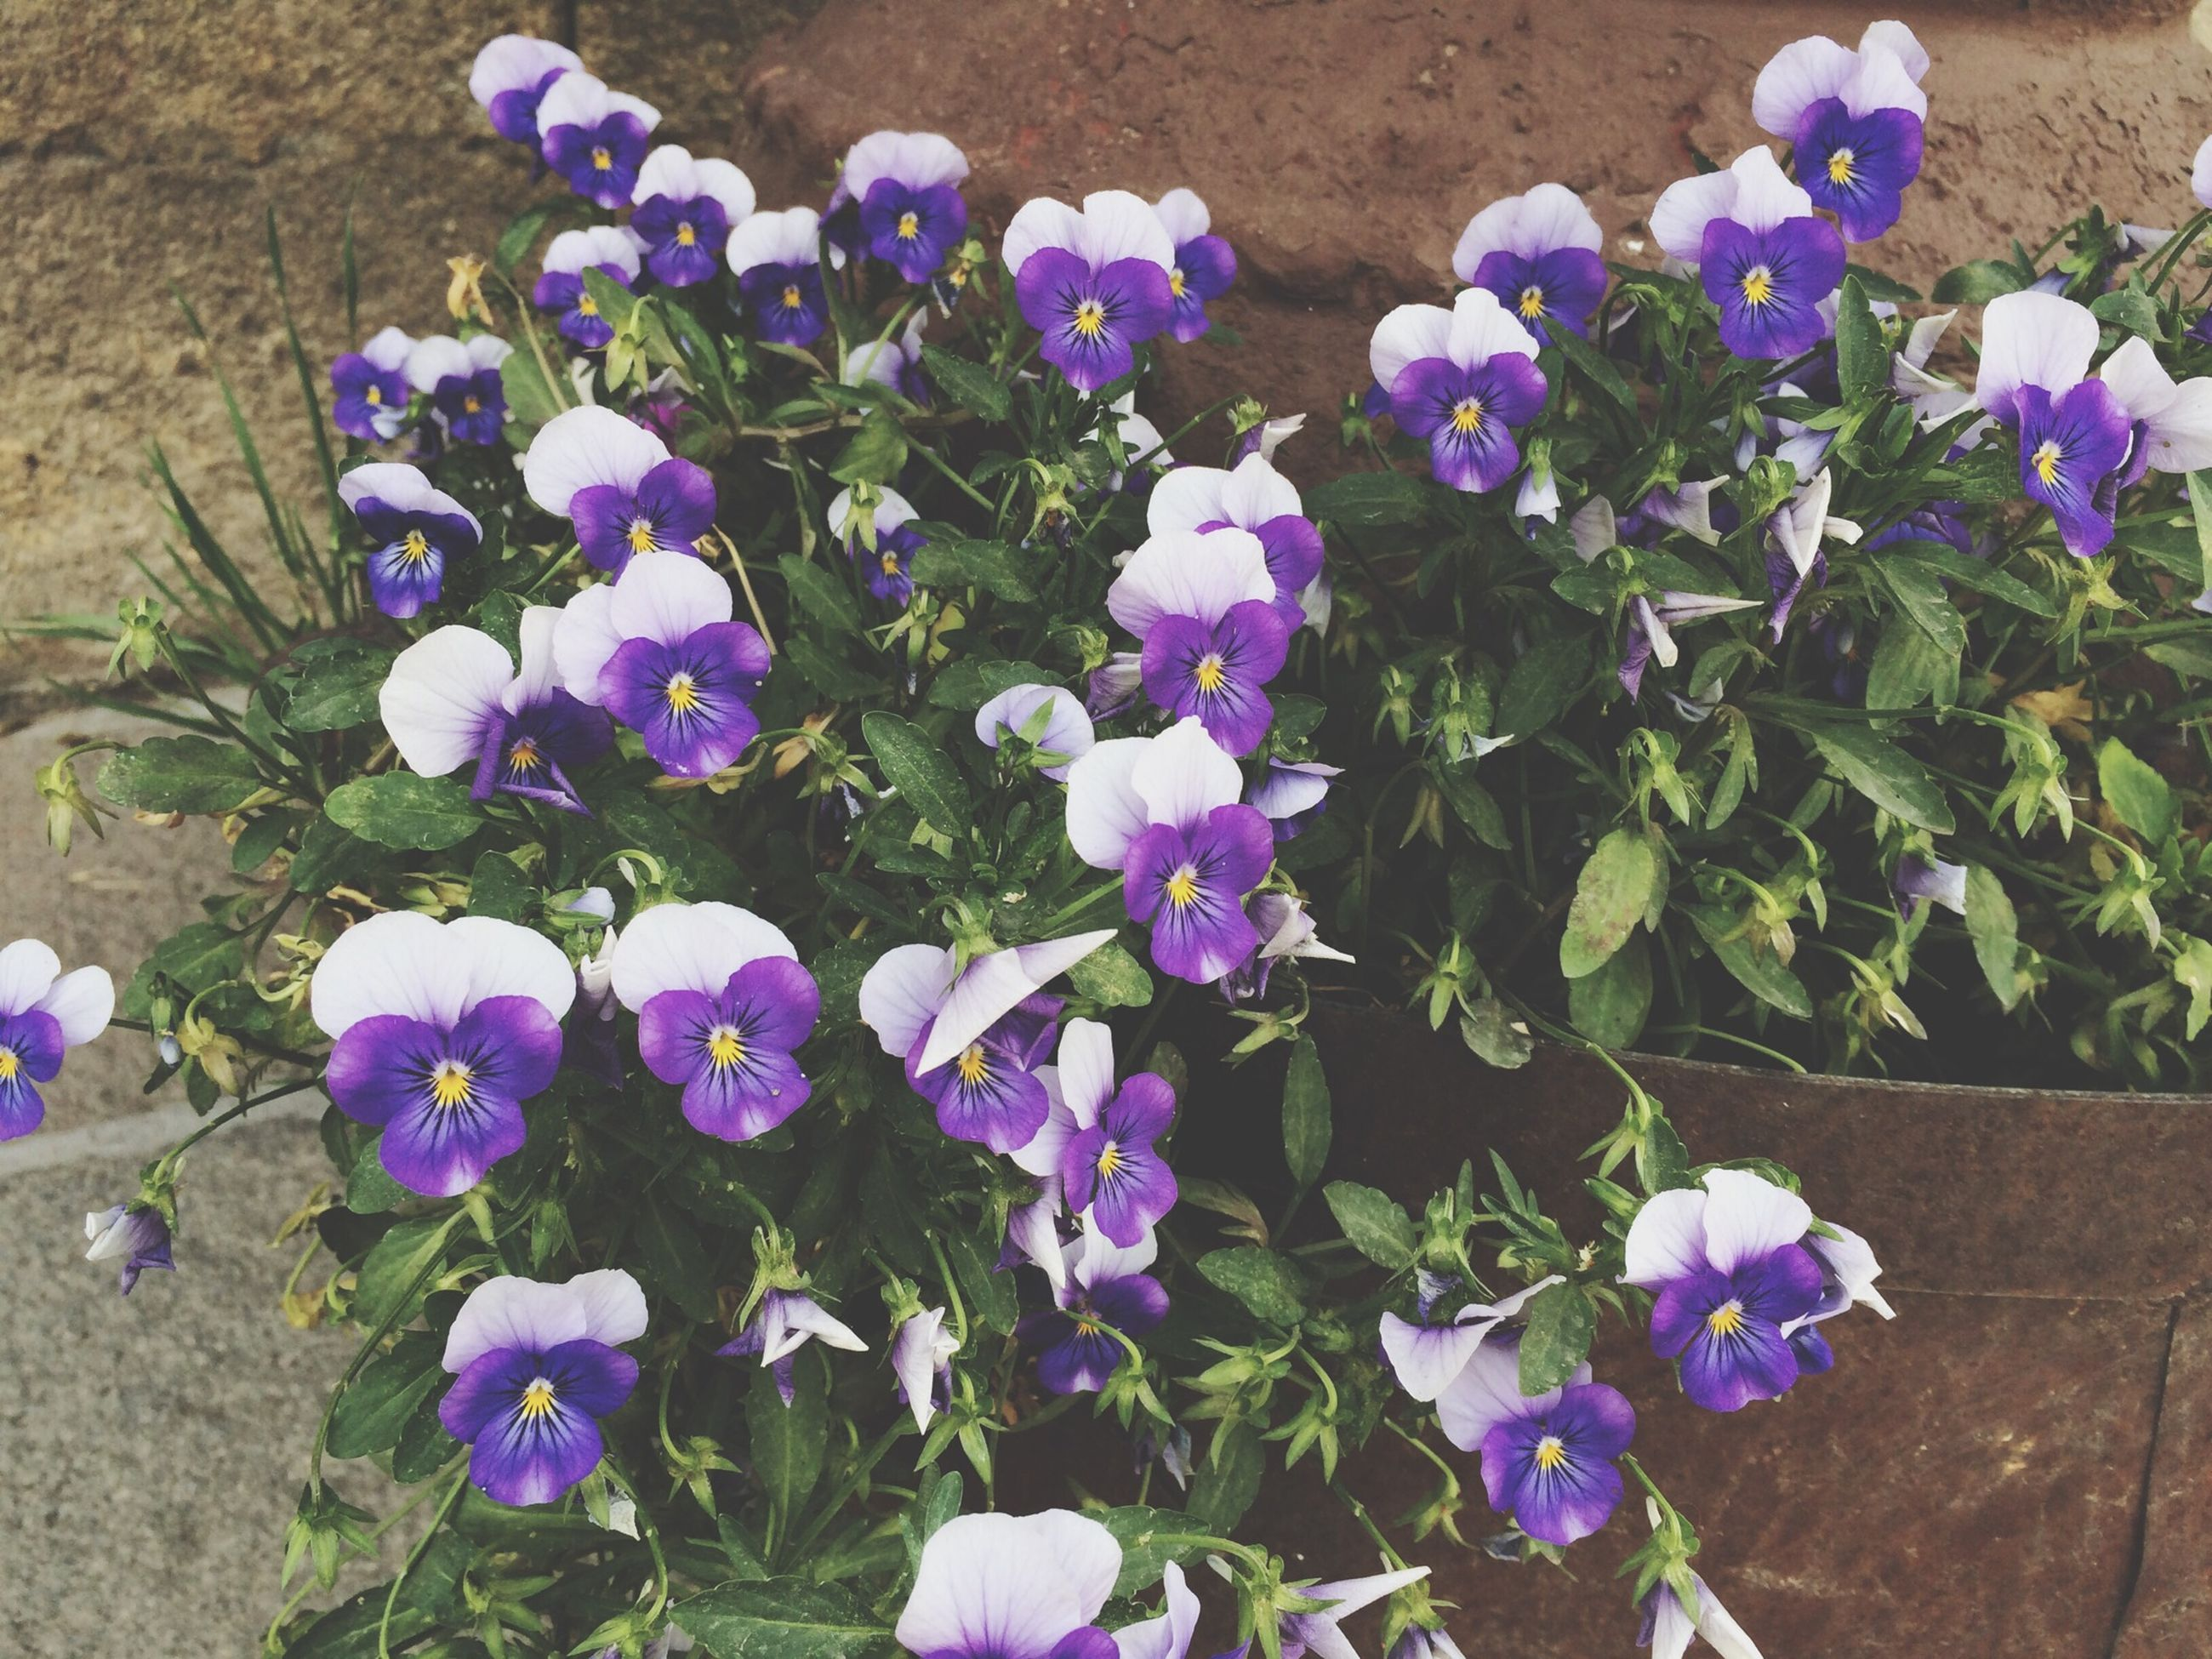 flower, purple, freshness, fragility, petal, growth, plant, high angle view, beauty in nature, flower head, blooming, nature, in bloom, blue, field, no people, outdoors, springtime, day, close-up